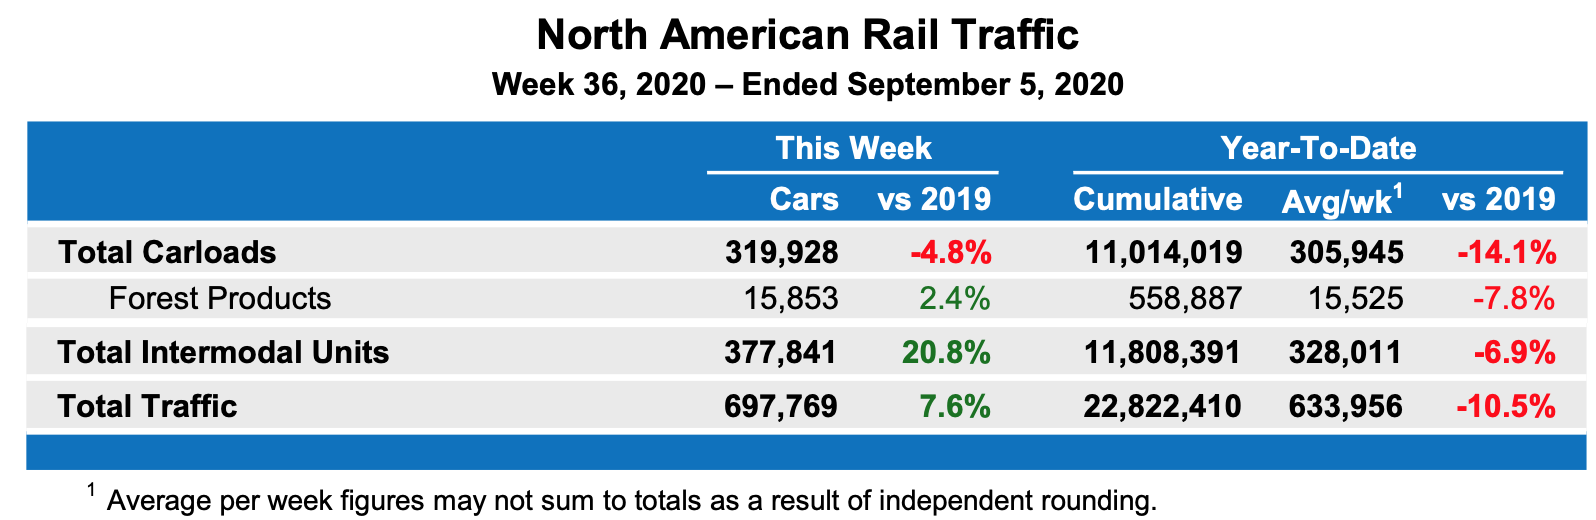 North America Railcar Loadings, Forest Products: AUG 2020